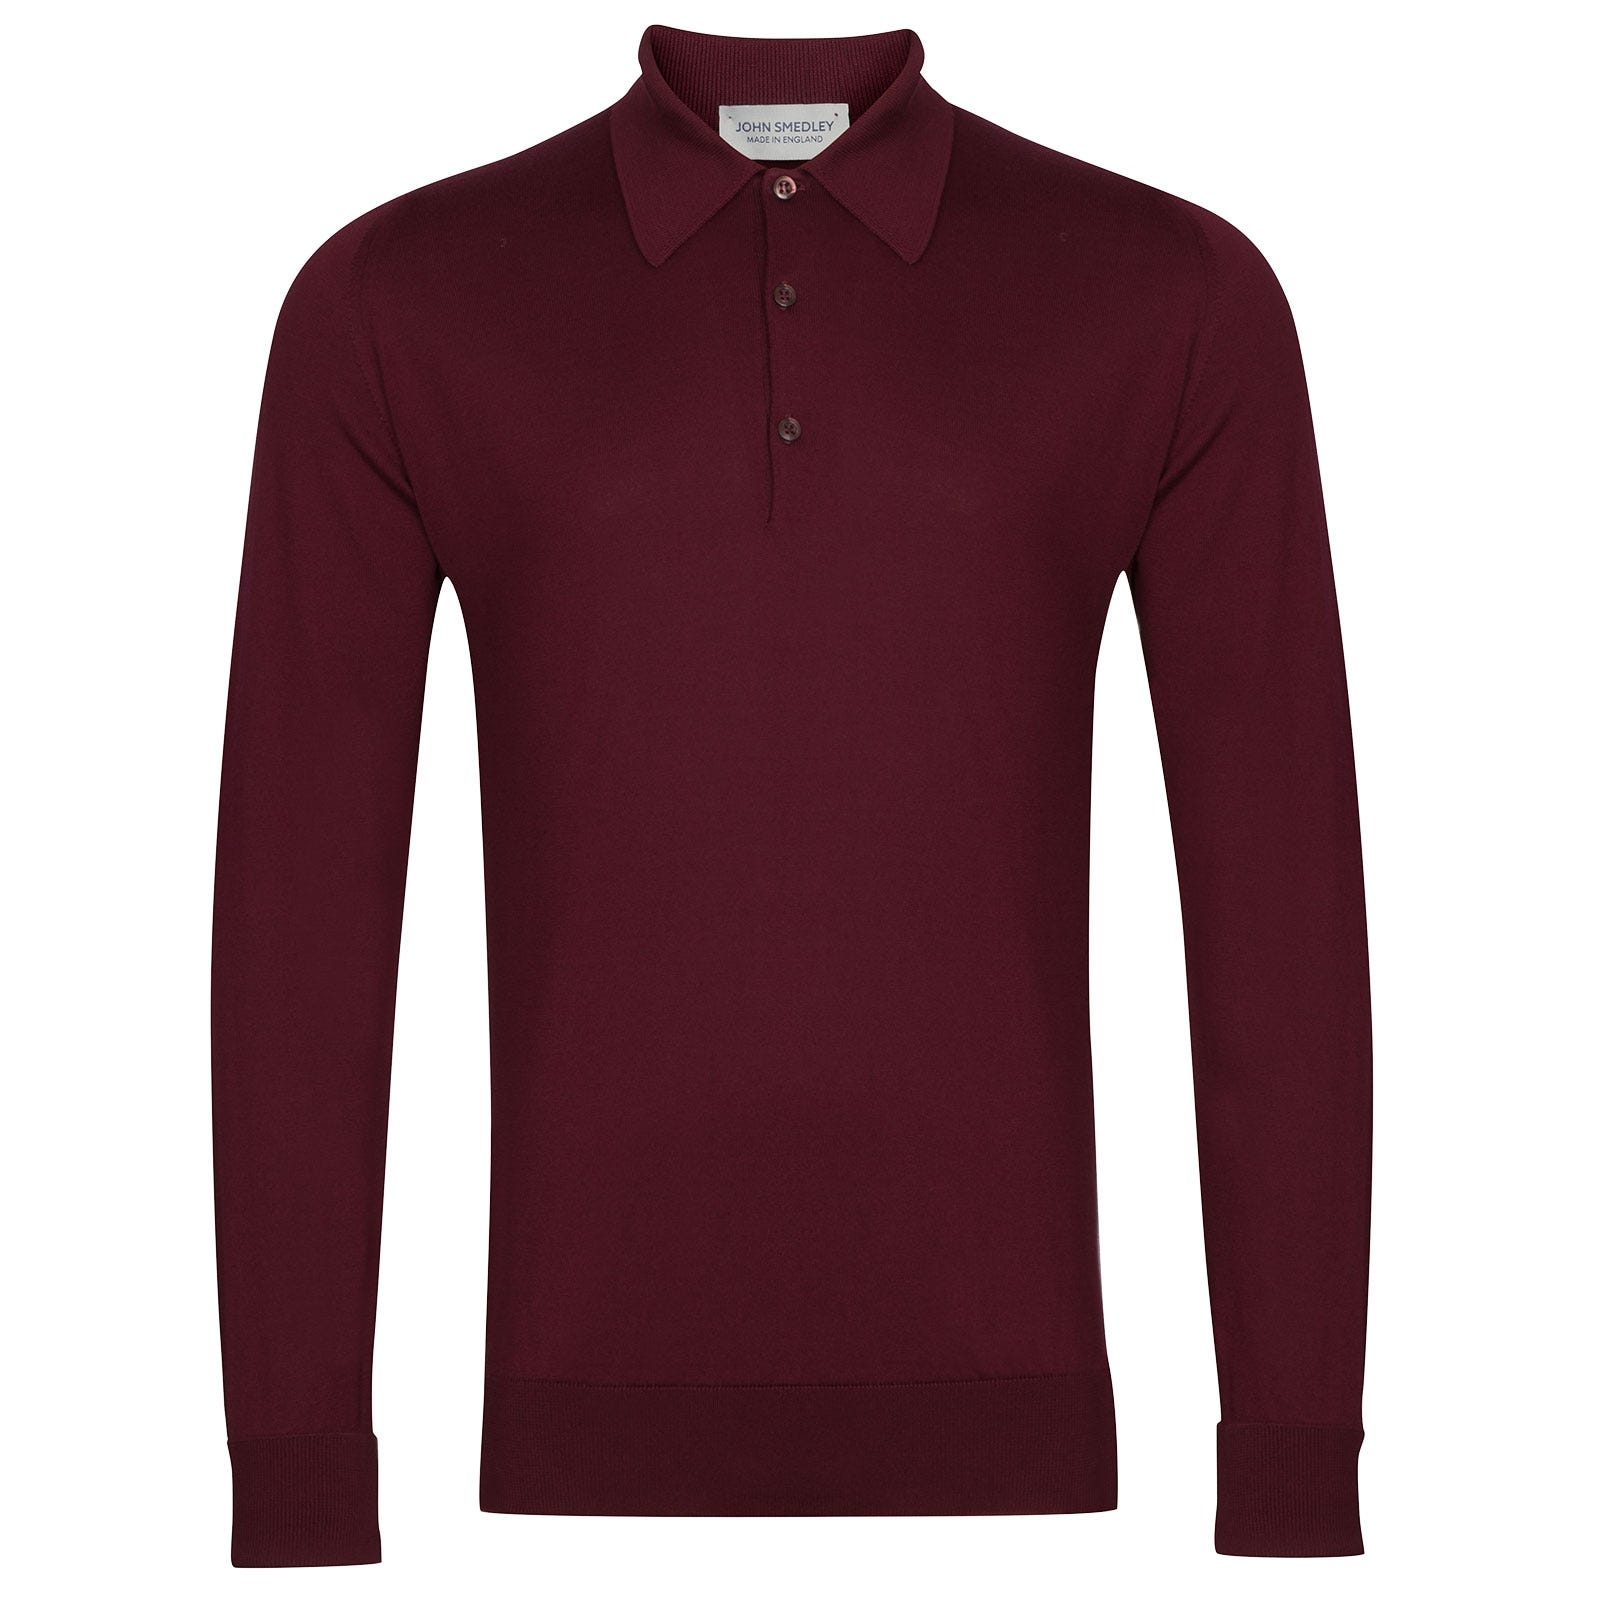 John Smedley Finchley Sea Island Cotton Shirt in Bordeaux-XXL